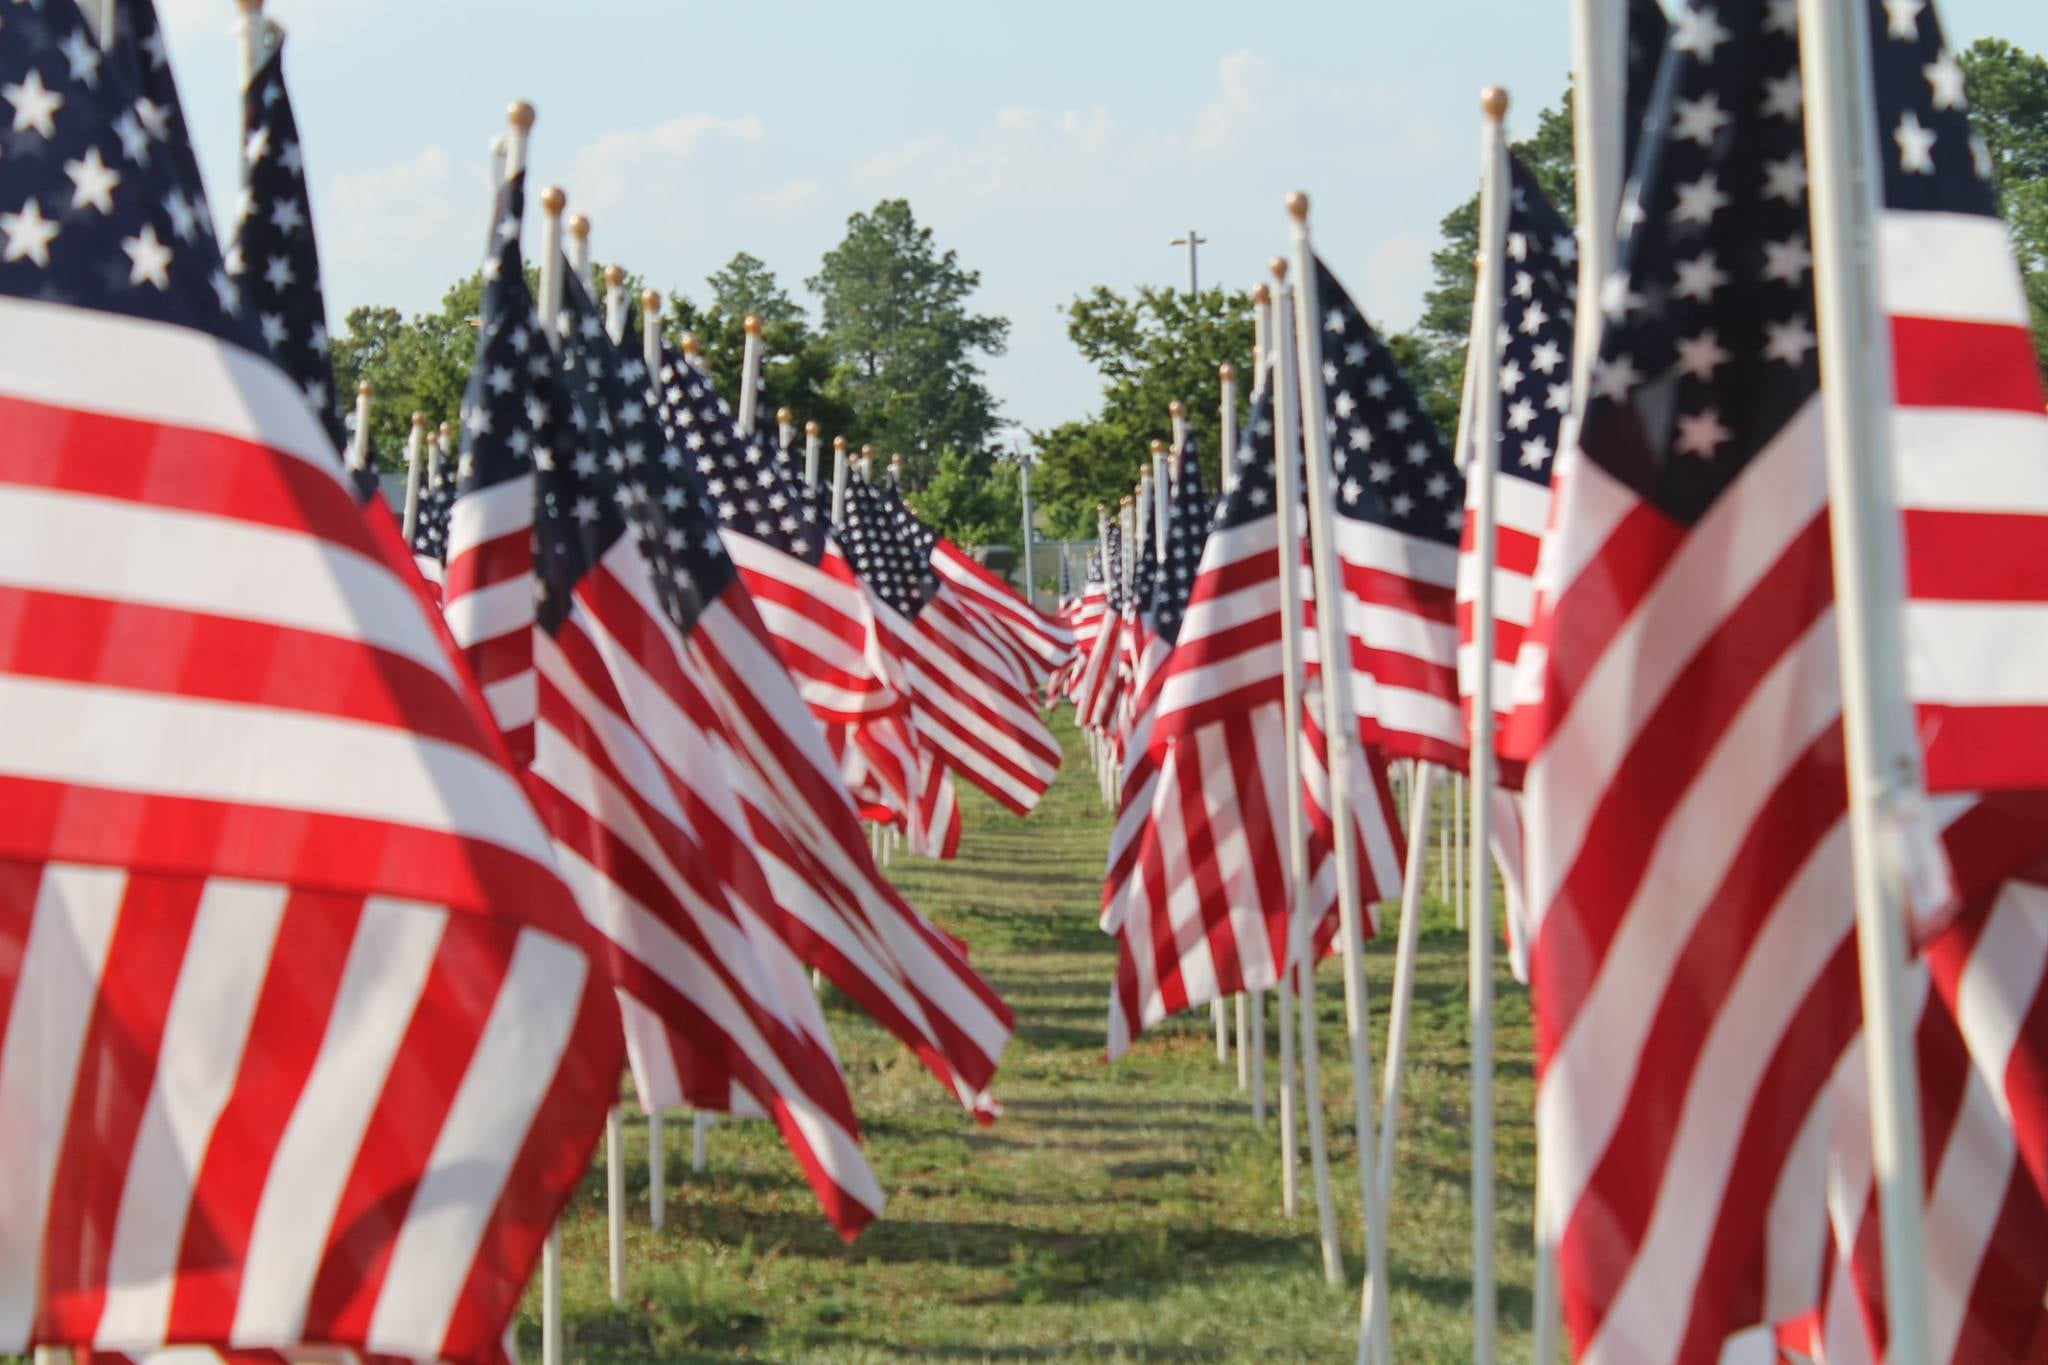 Free Car Washes for Veterans & Active Military on July 4th